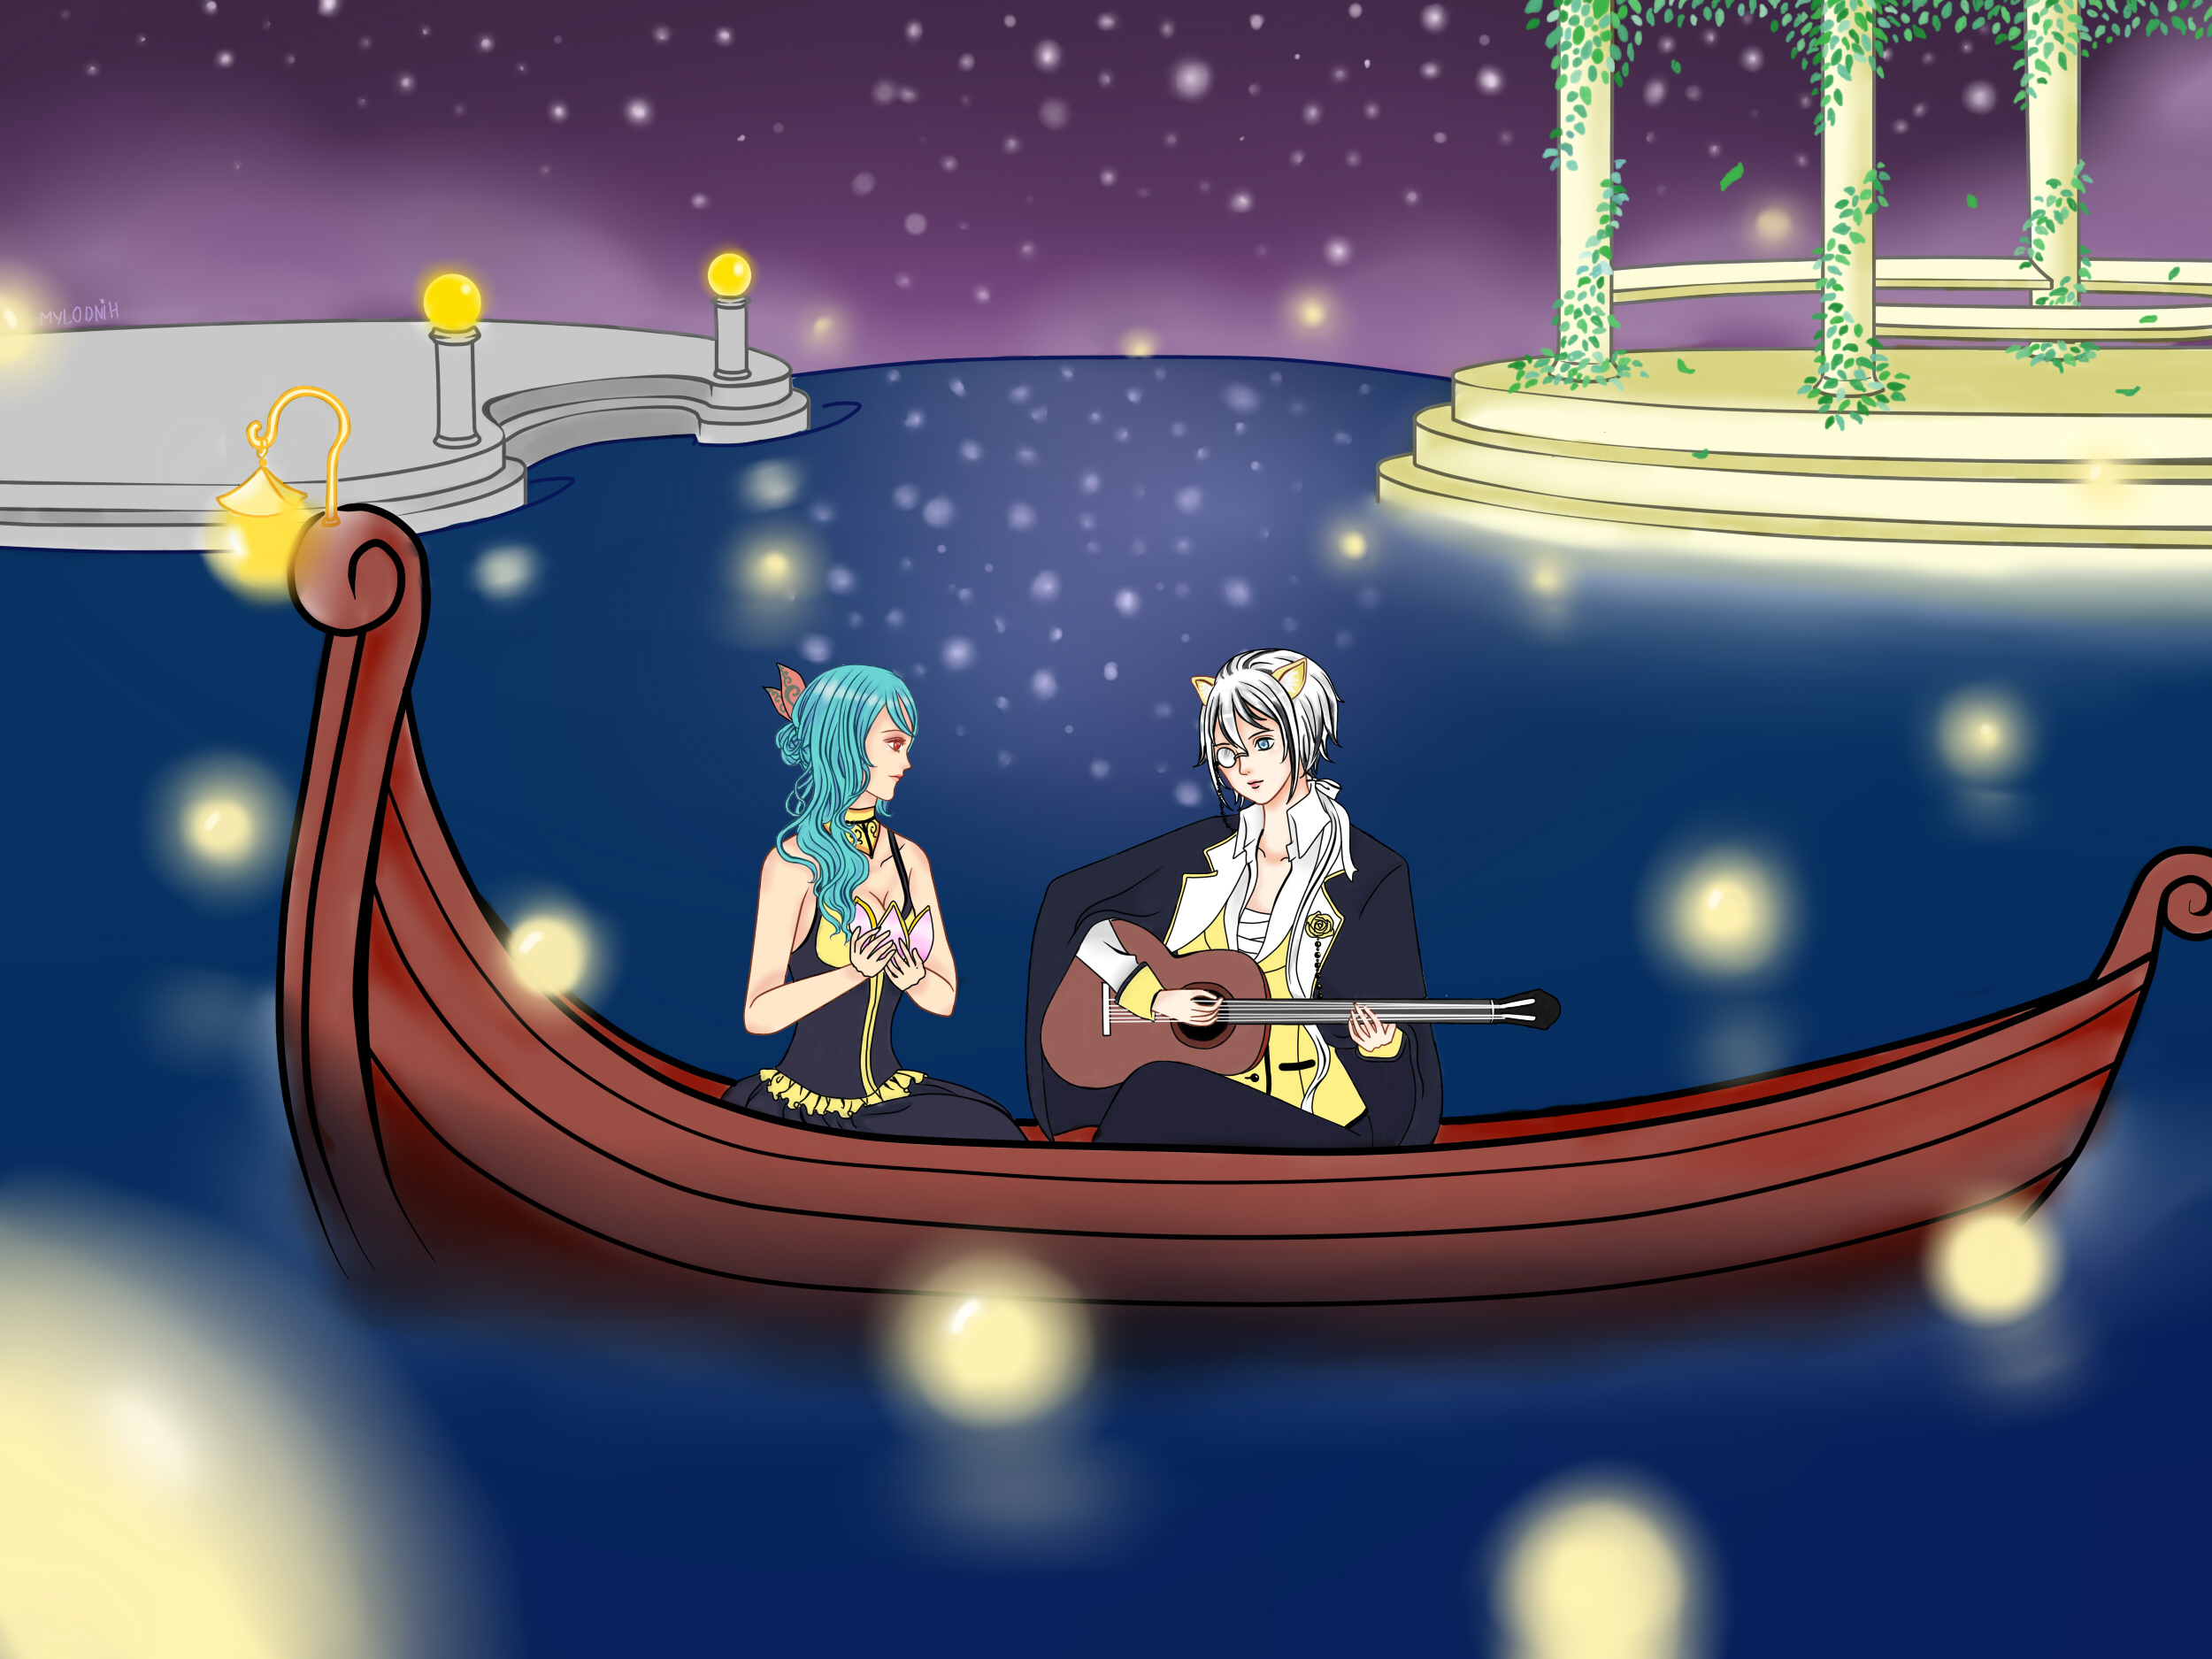 [L4S] Summer prom_ Couple Dolly Leo and Kurayami by Mylodnih